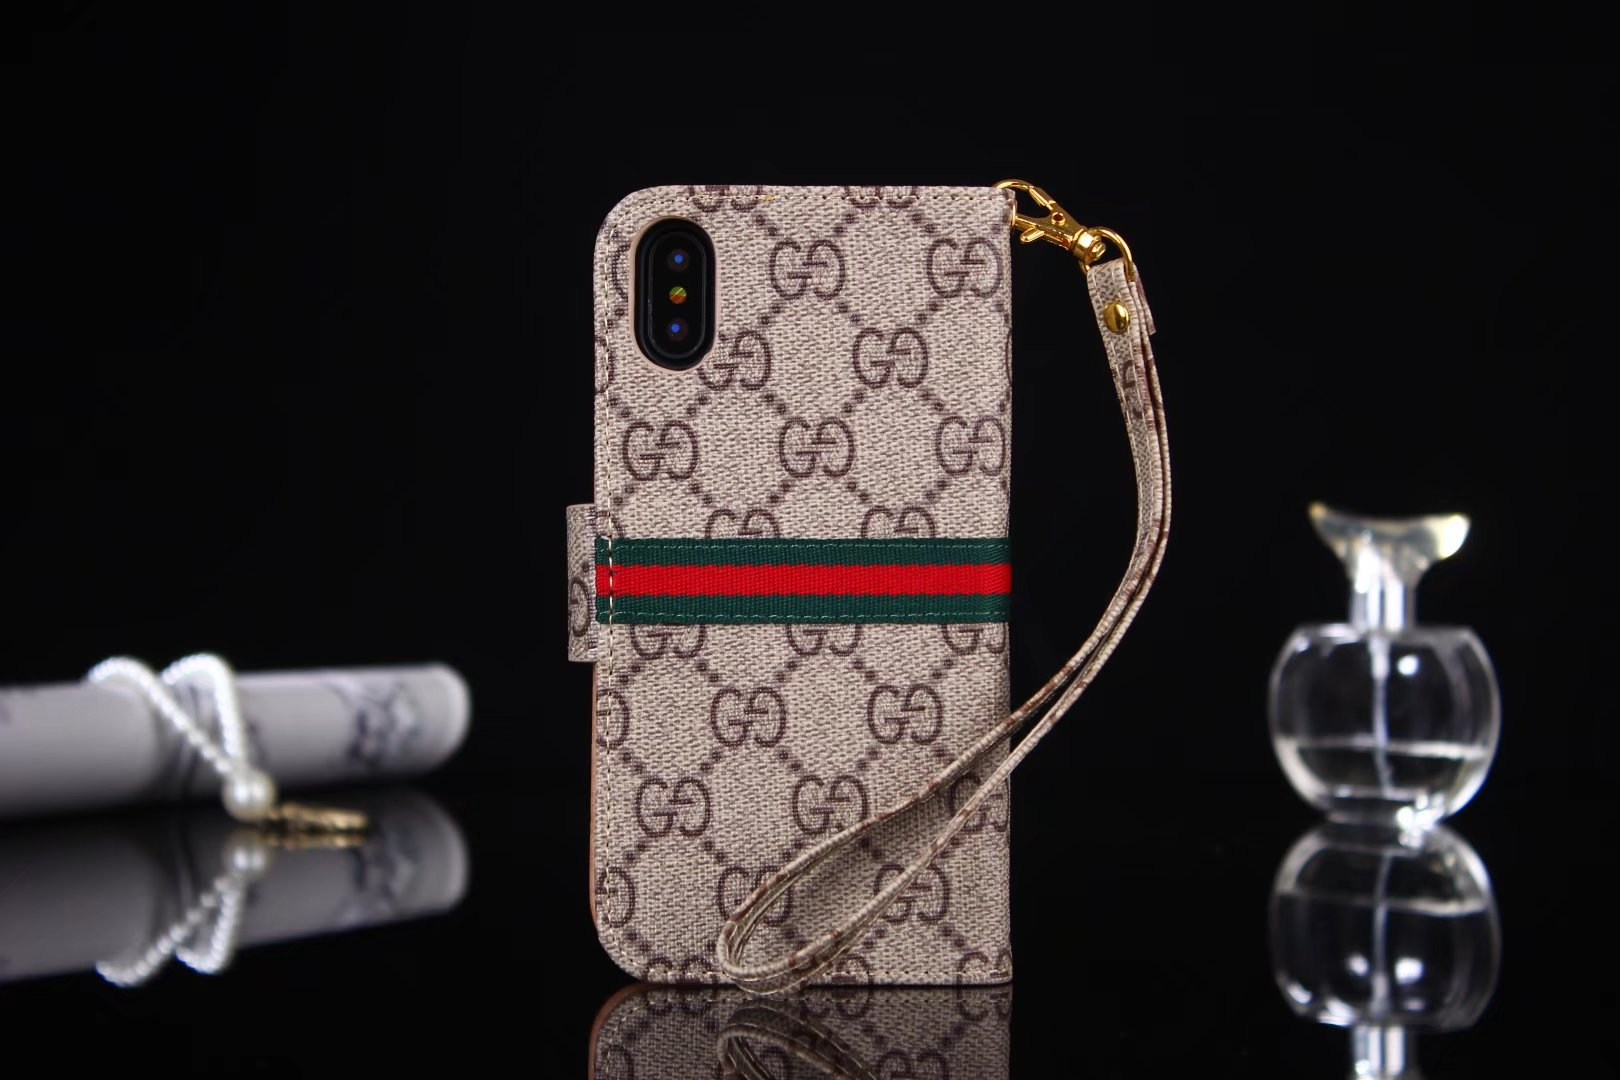 iphone X s phone covers iphone X cases and covers Gucci iPhone X case phone cover custom online phone case store ihphone 6 designer cases ipod 6 phone cases best 8 case